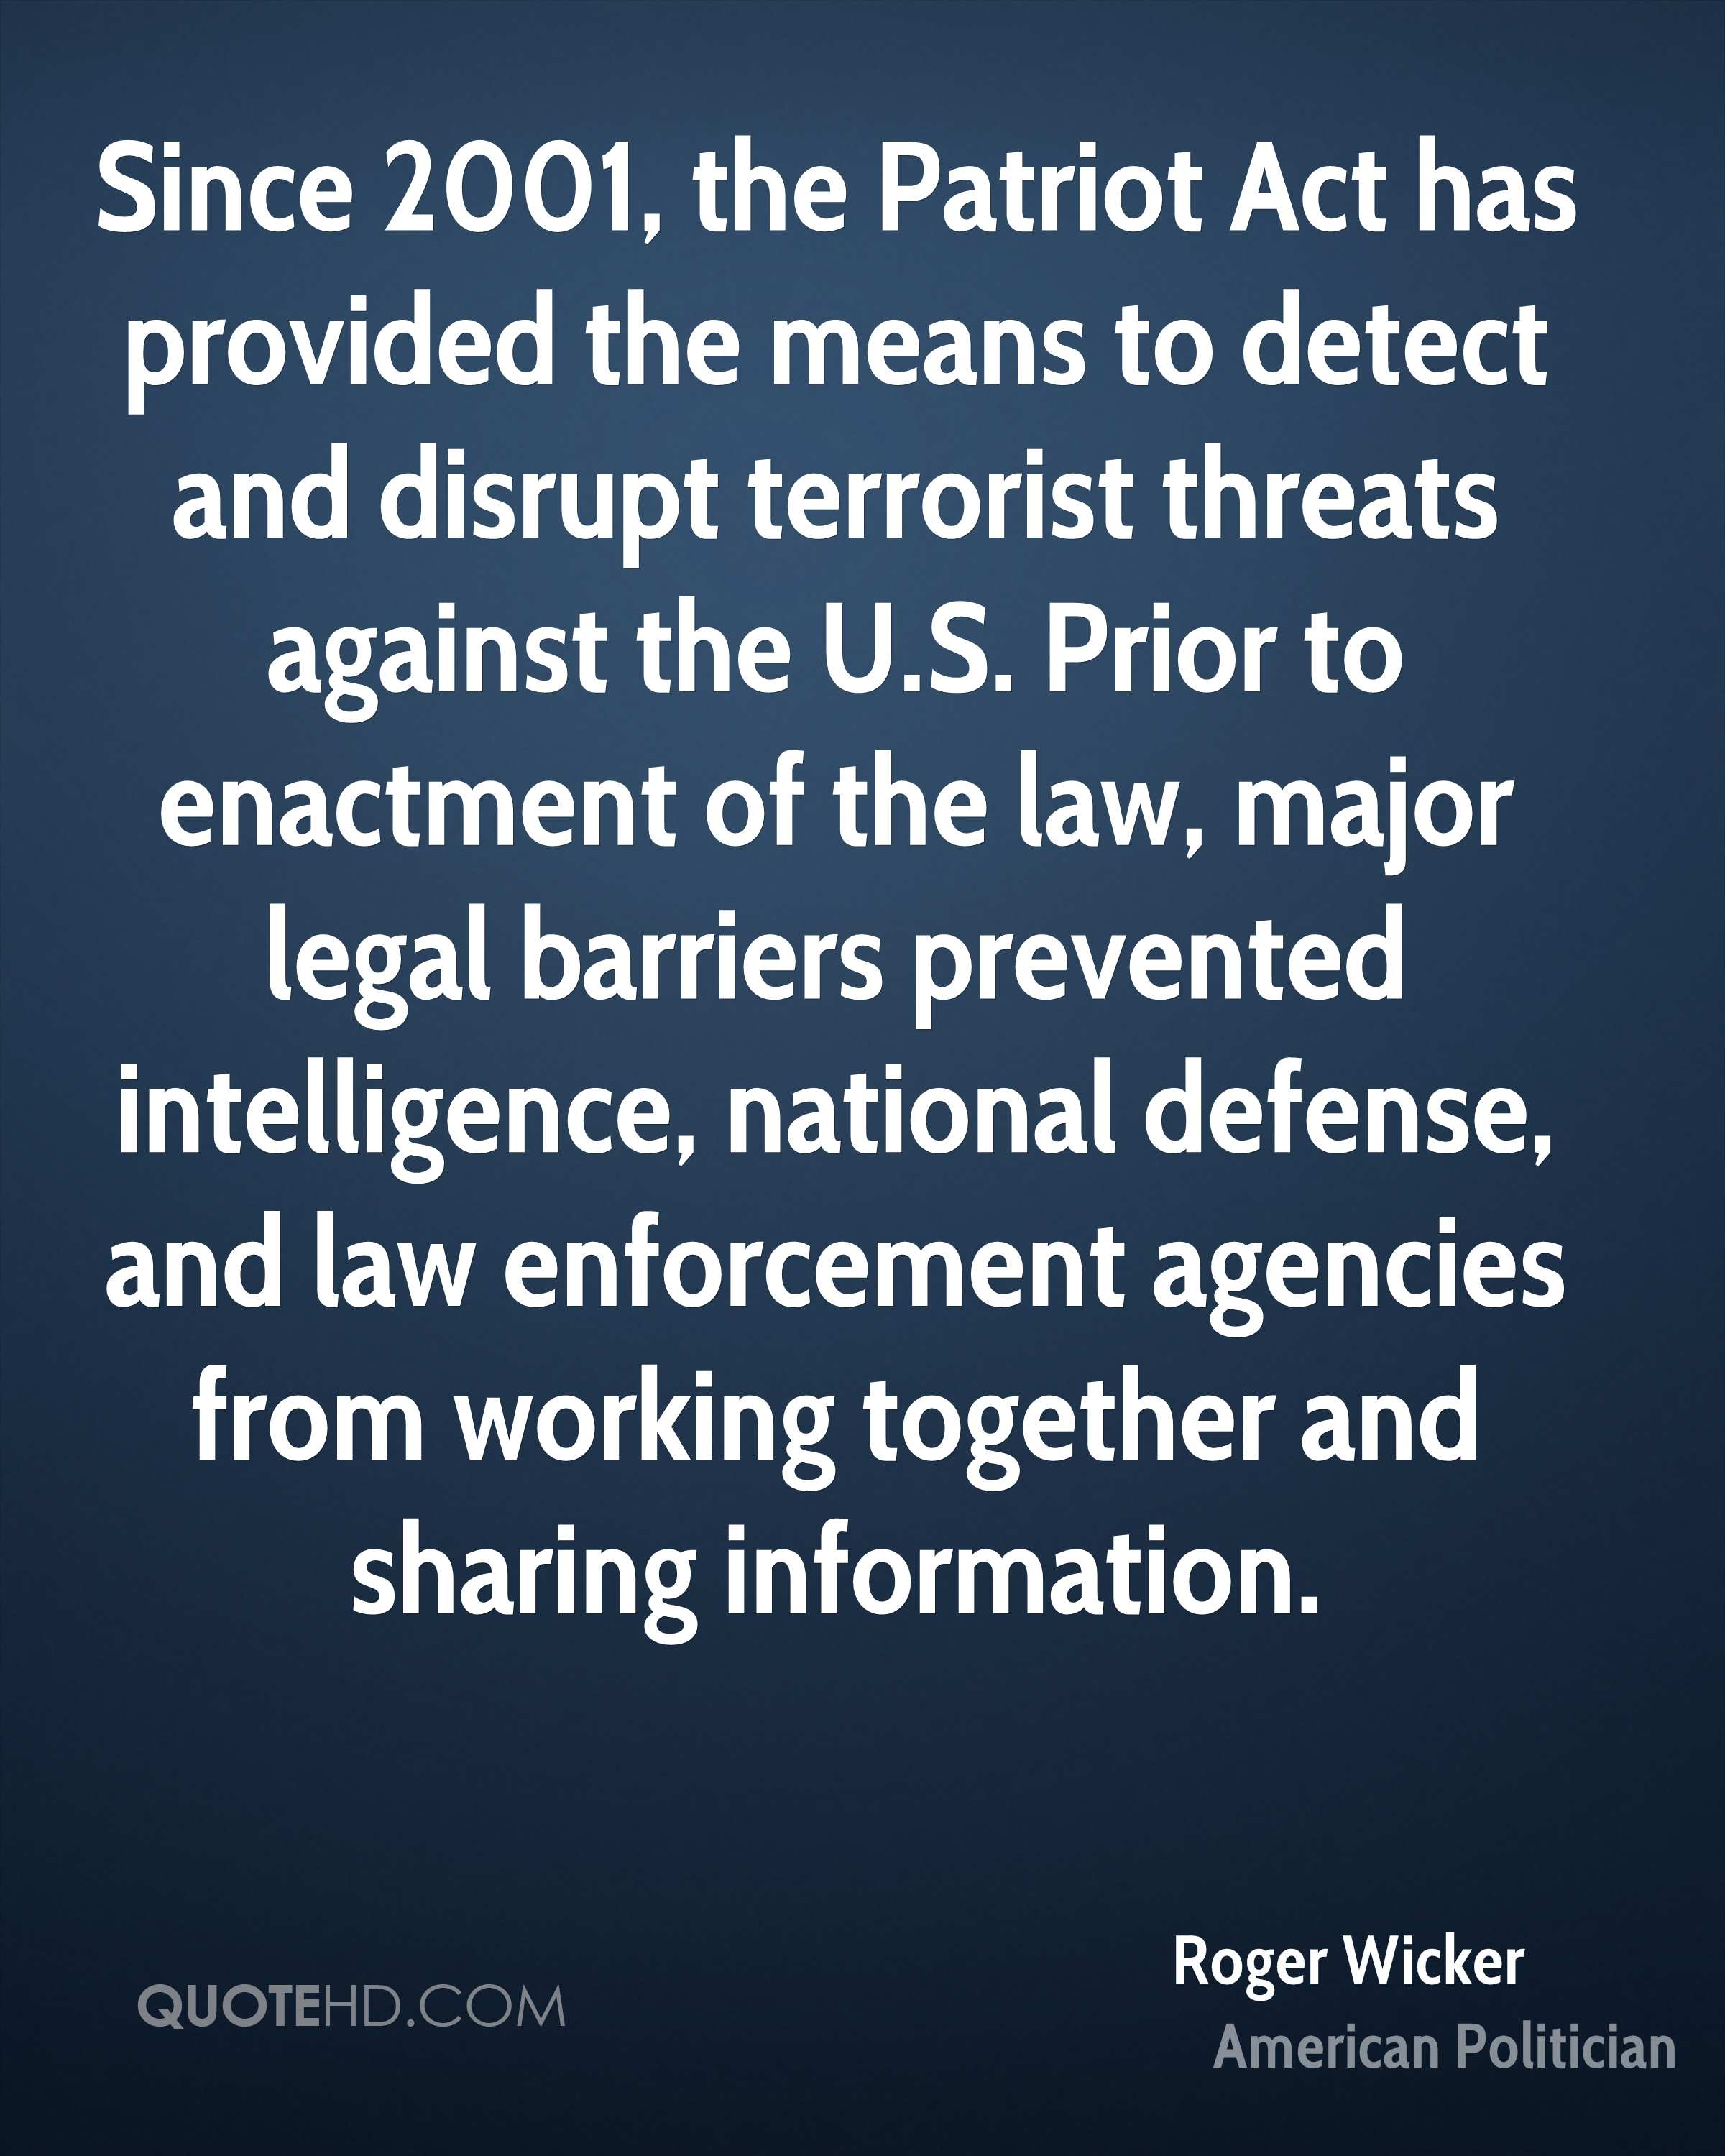 Since 2001, the Patriot Act has provided the means to detect and disrupt terrorist threats against the U.S. Prior to enactment of the law, major legal barriers prevented intelligence, national defense, and law enforcement agencies from working together and sharing information.